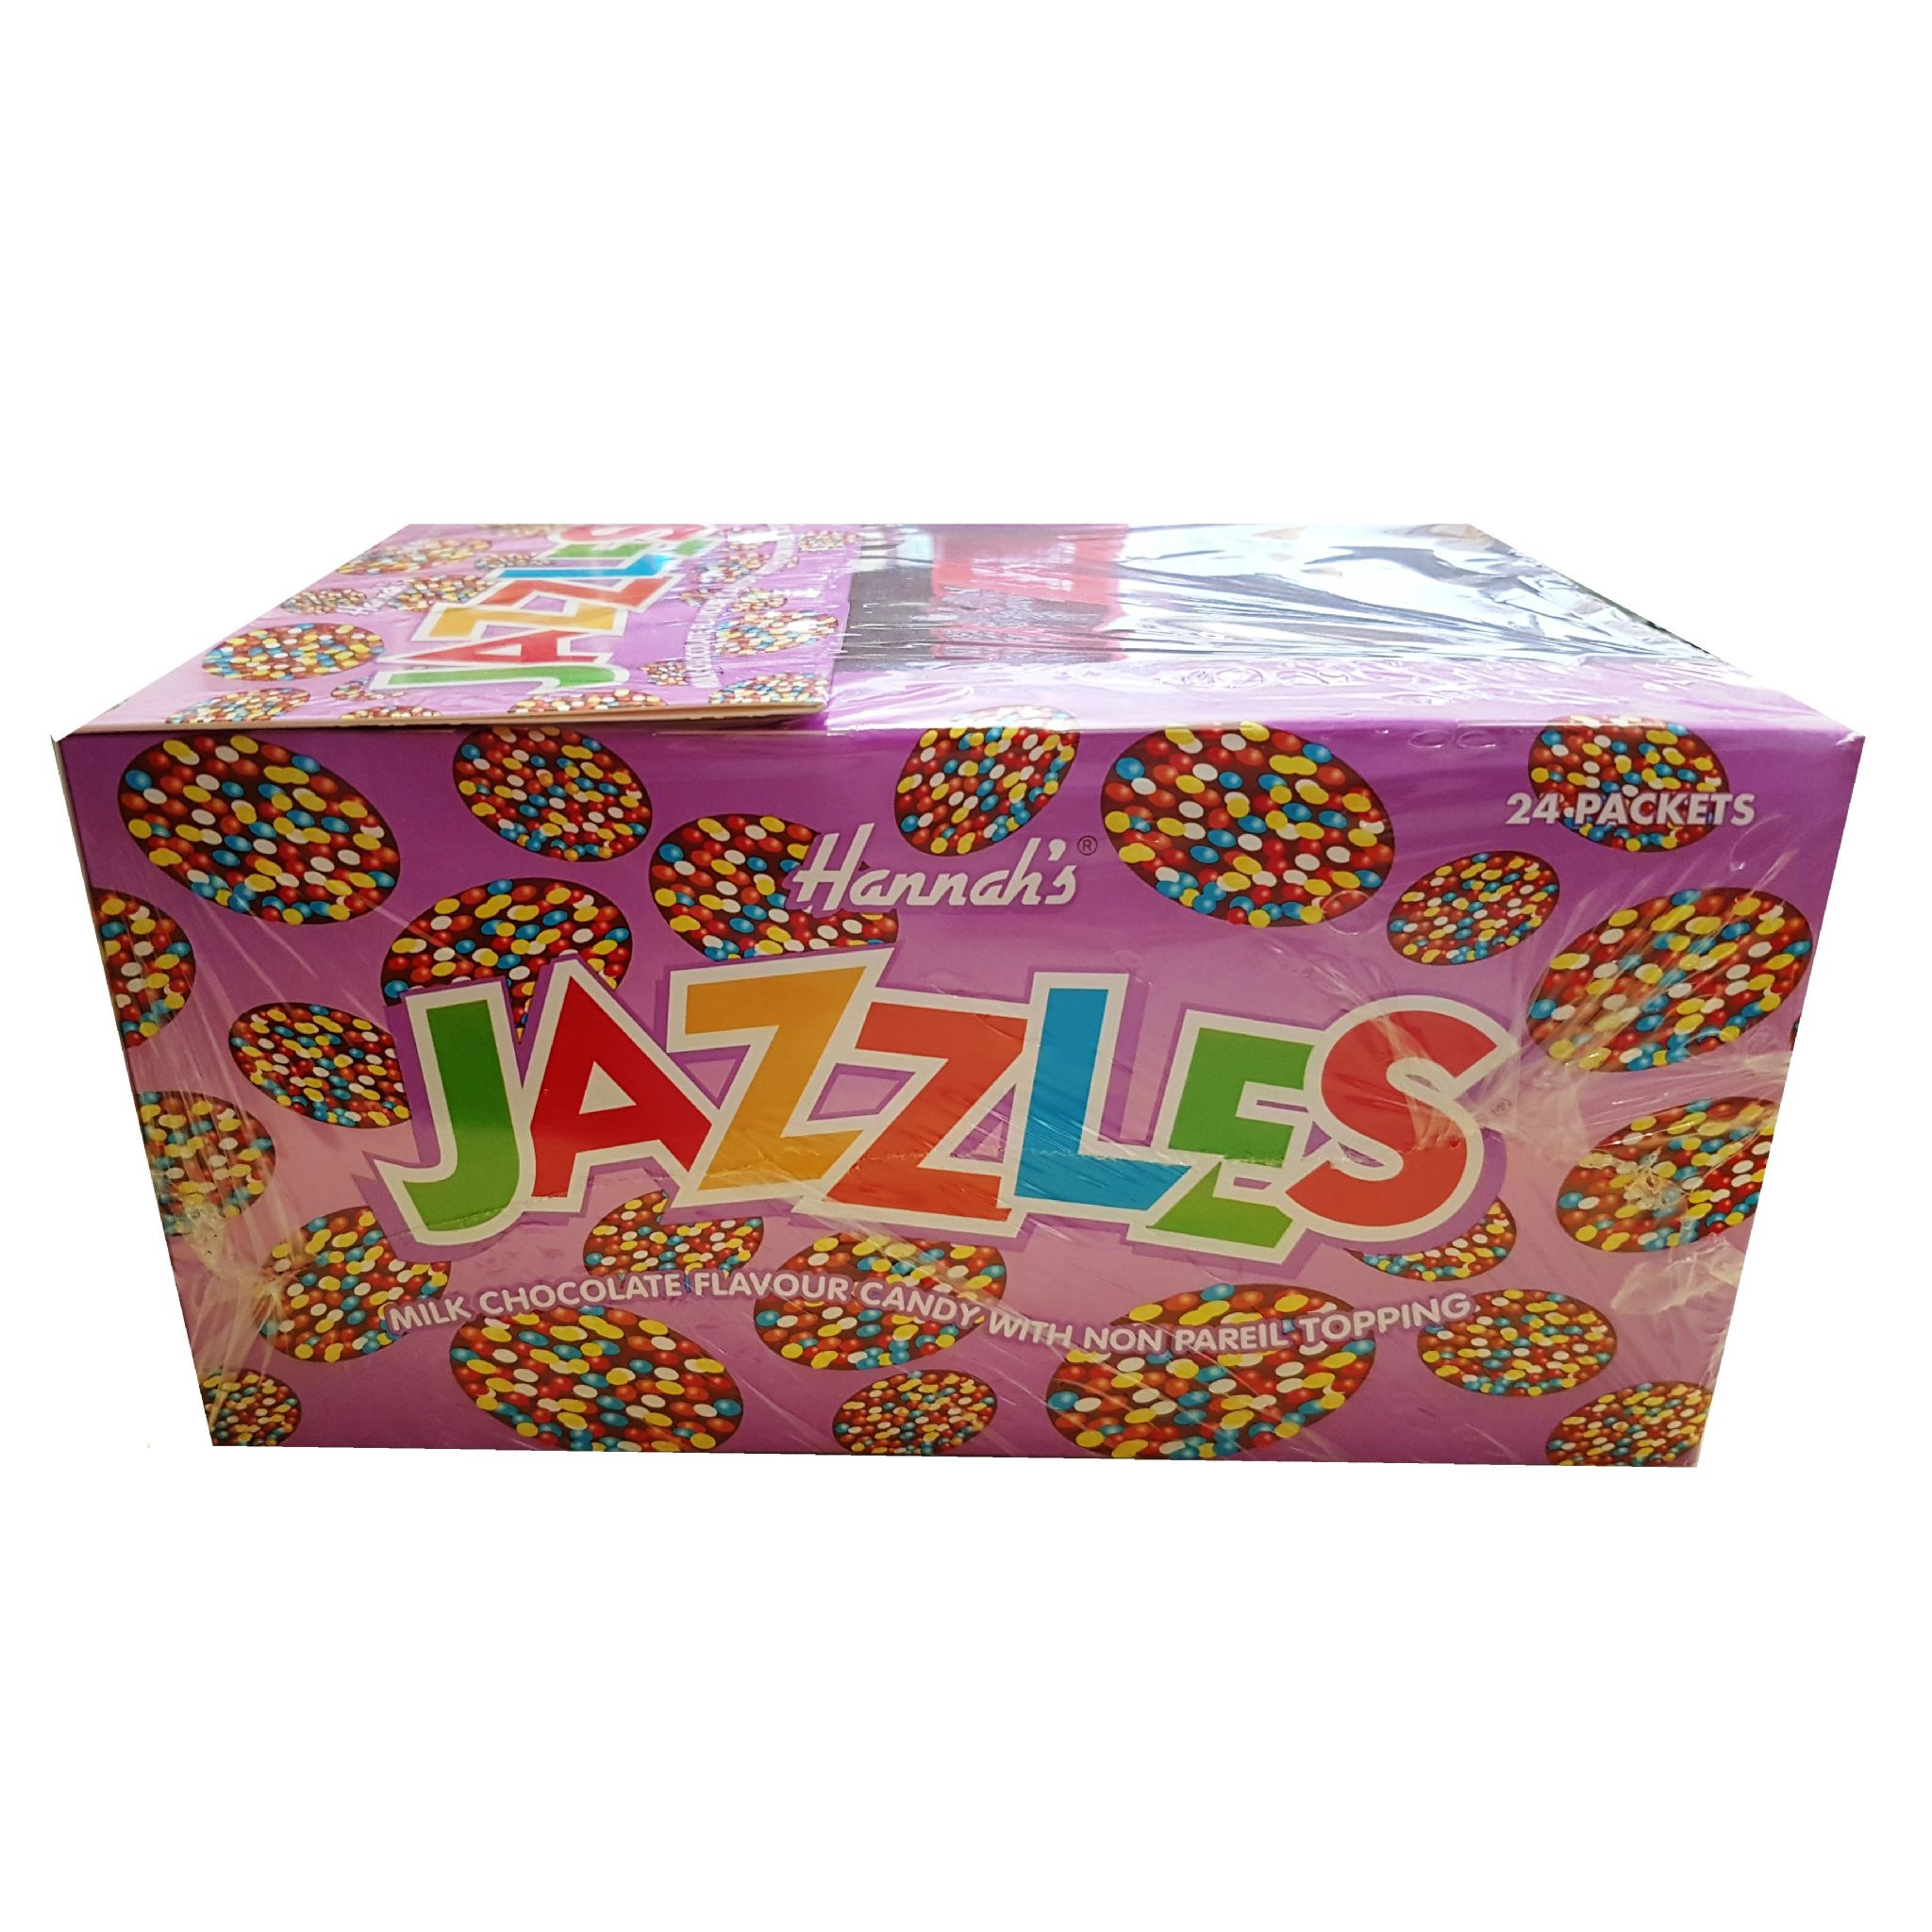 24 X Milk Chocolate Hannahs Jazzles Jazzies Candy Buttons Sweets 40g Wholesale Box